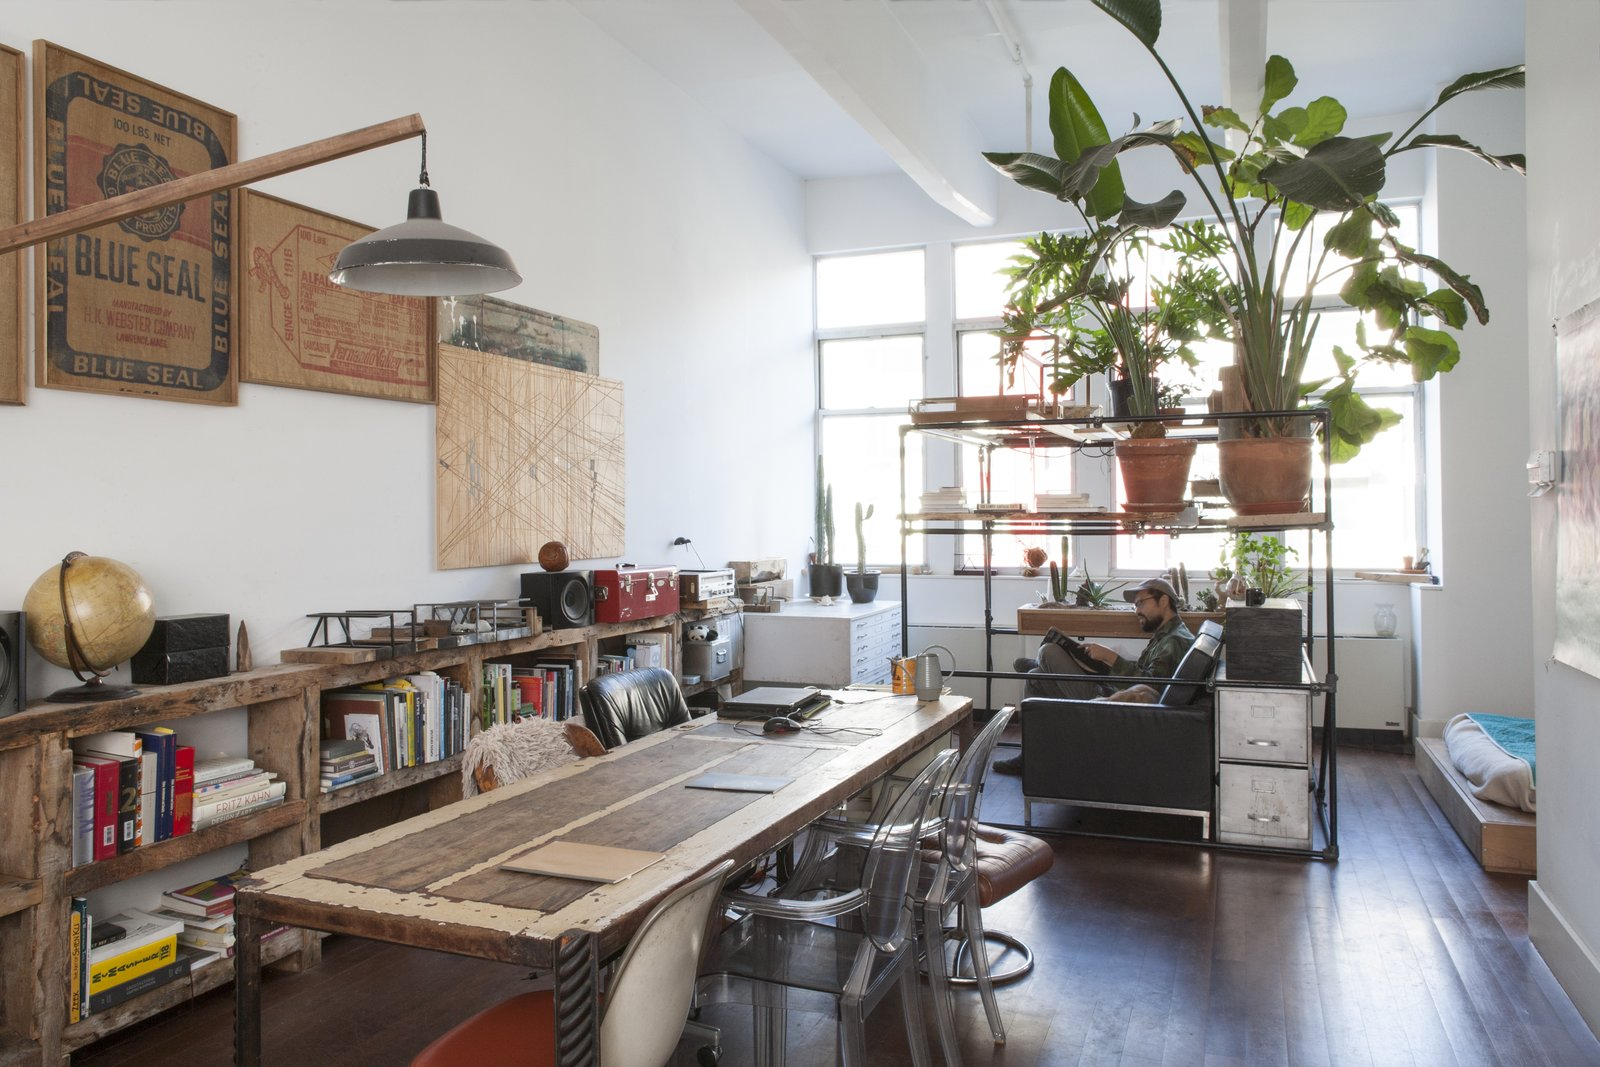 Photo 1 of 5 in Huy Bui's Brooklyn Loft Is Like a Self-Contained Jungle